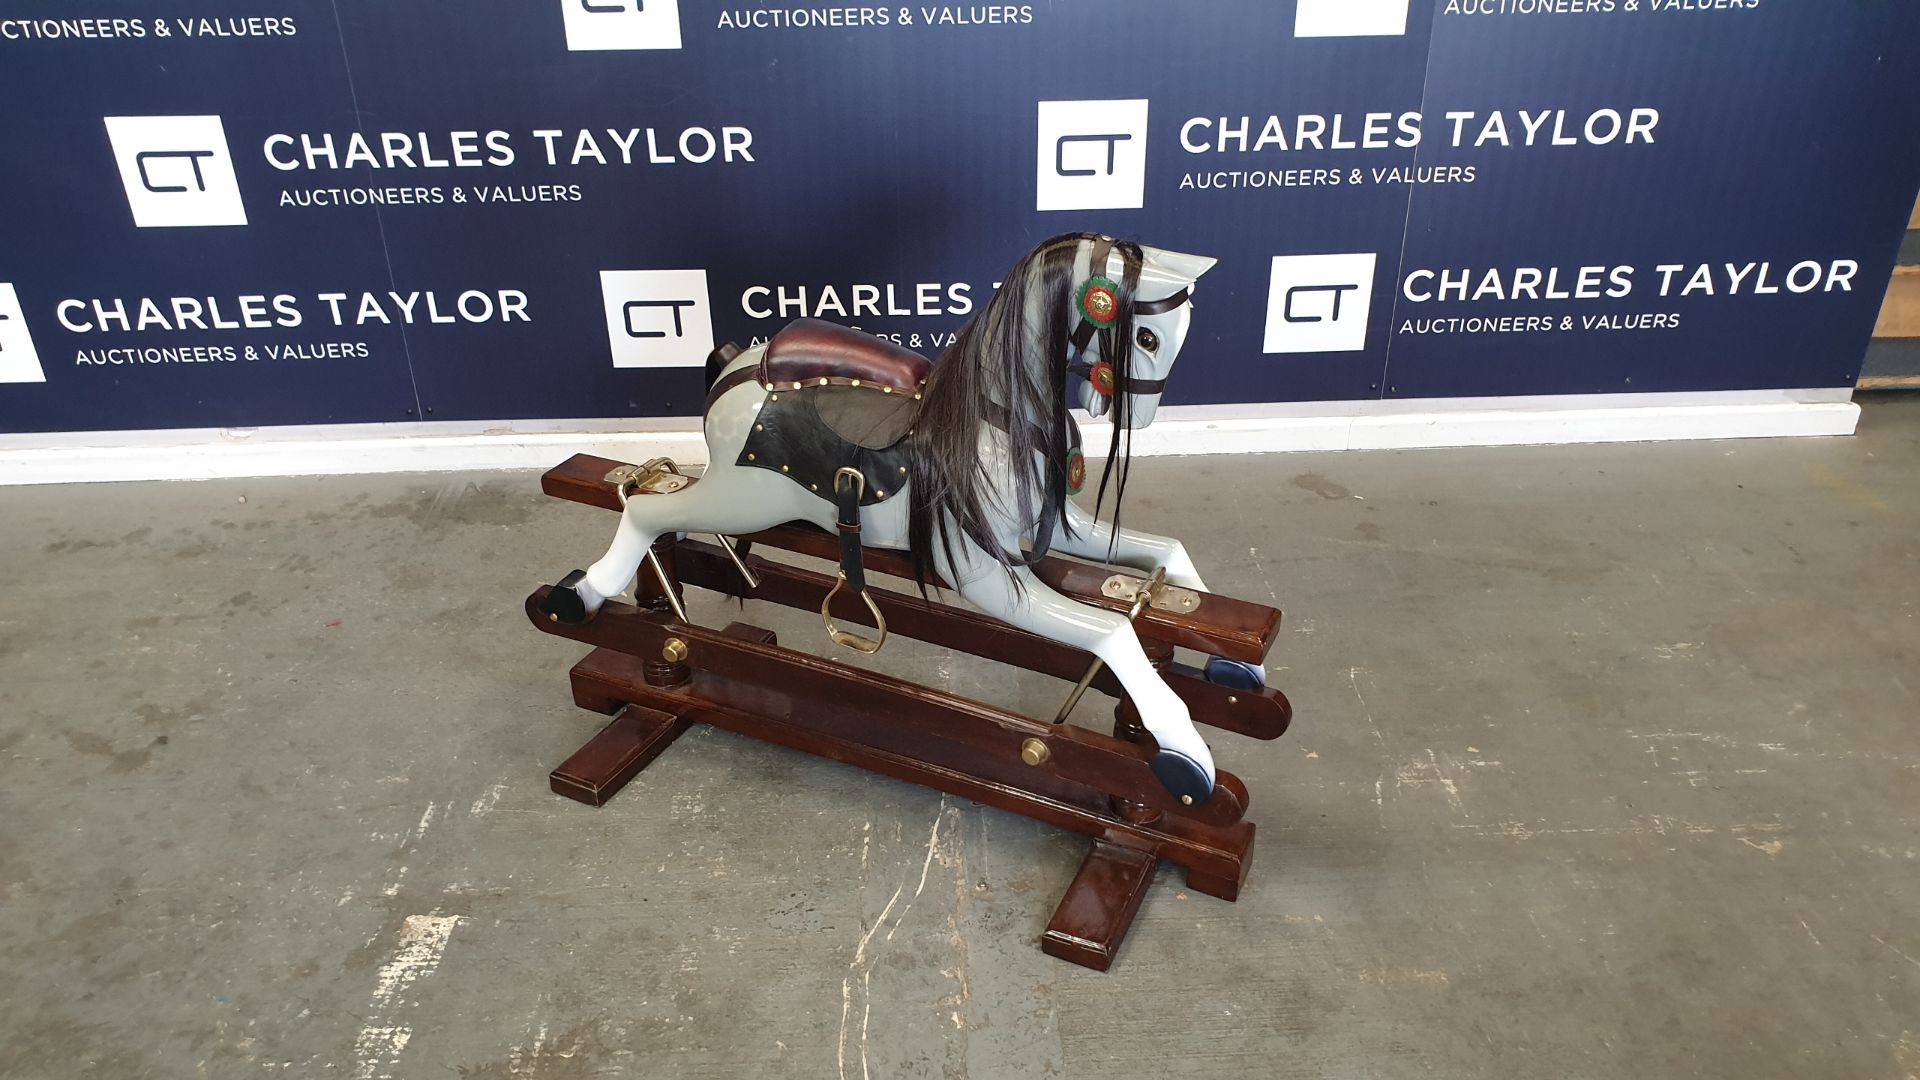 Lot 15 - BRAND NEW SOLID WOODEN GREY ROCKING HORSE 110 X 45 X 90cm RRP £1000